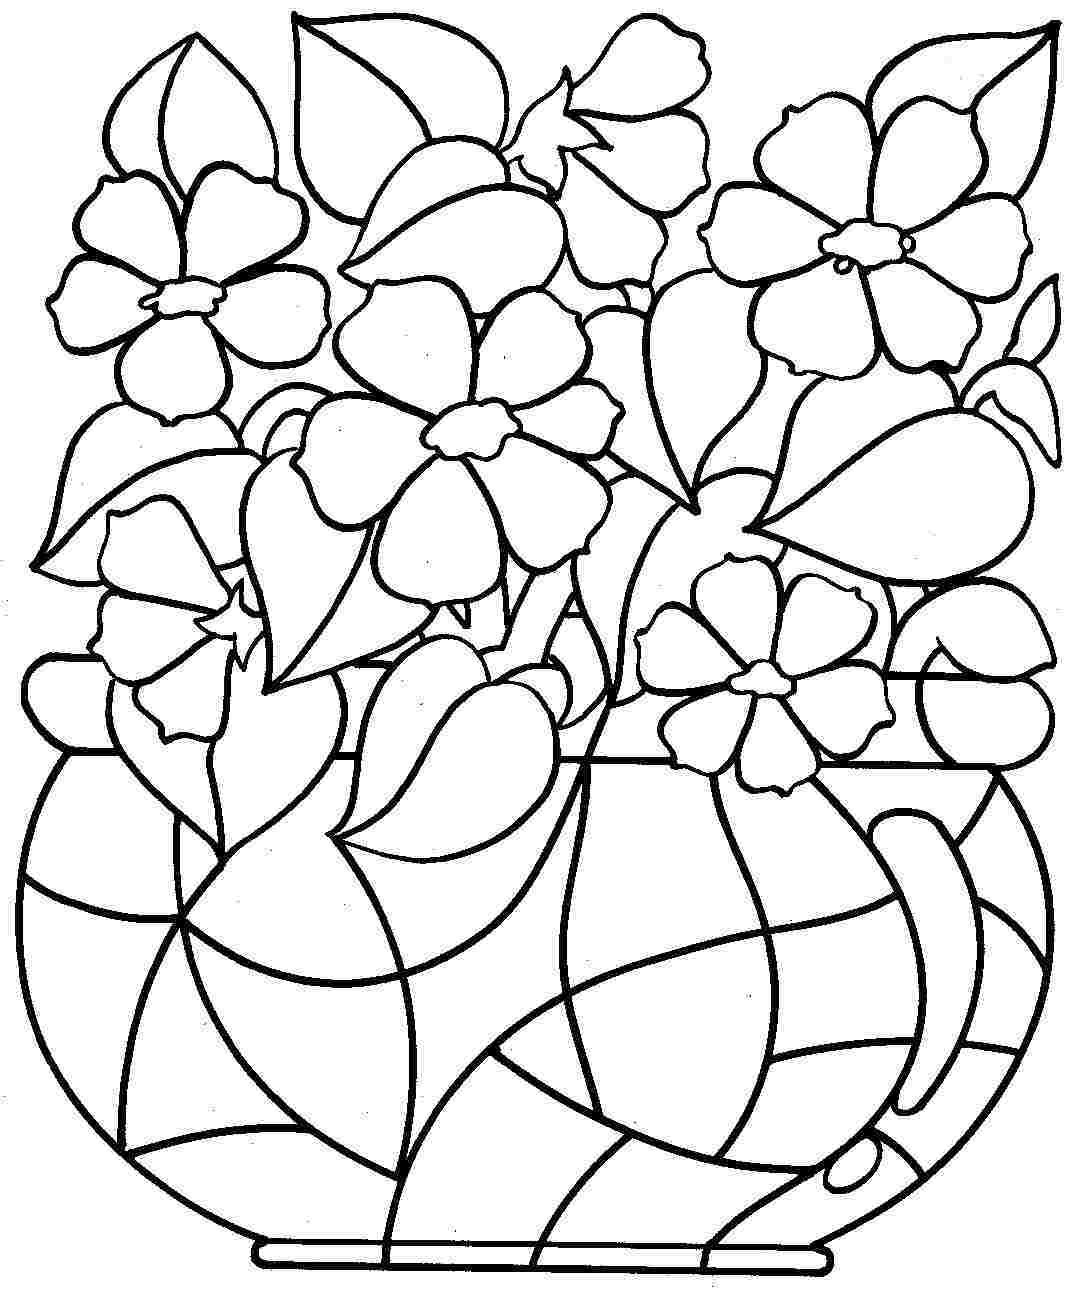 1078x1289 Incredible Printable Coloring Pages Big Flower Image For Adults